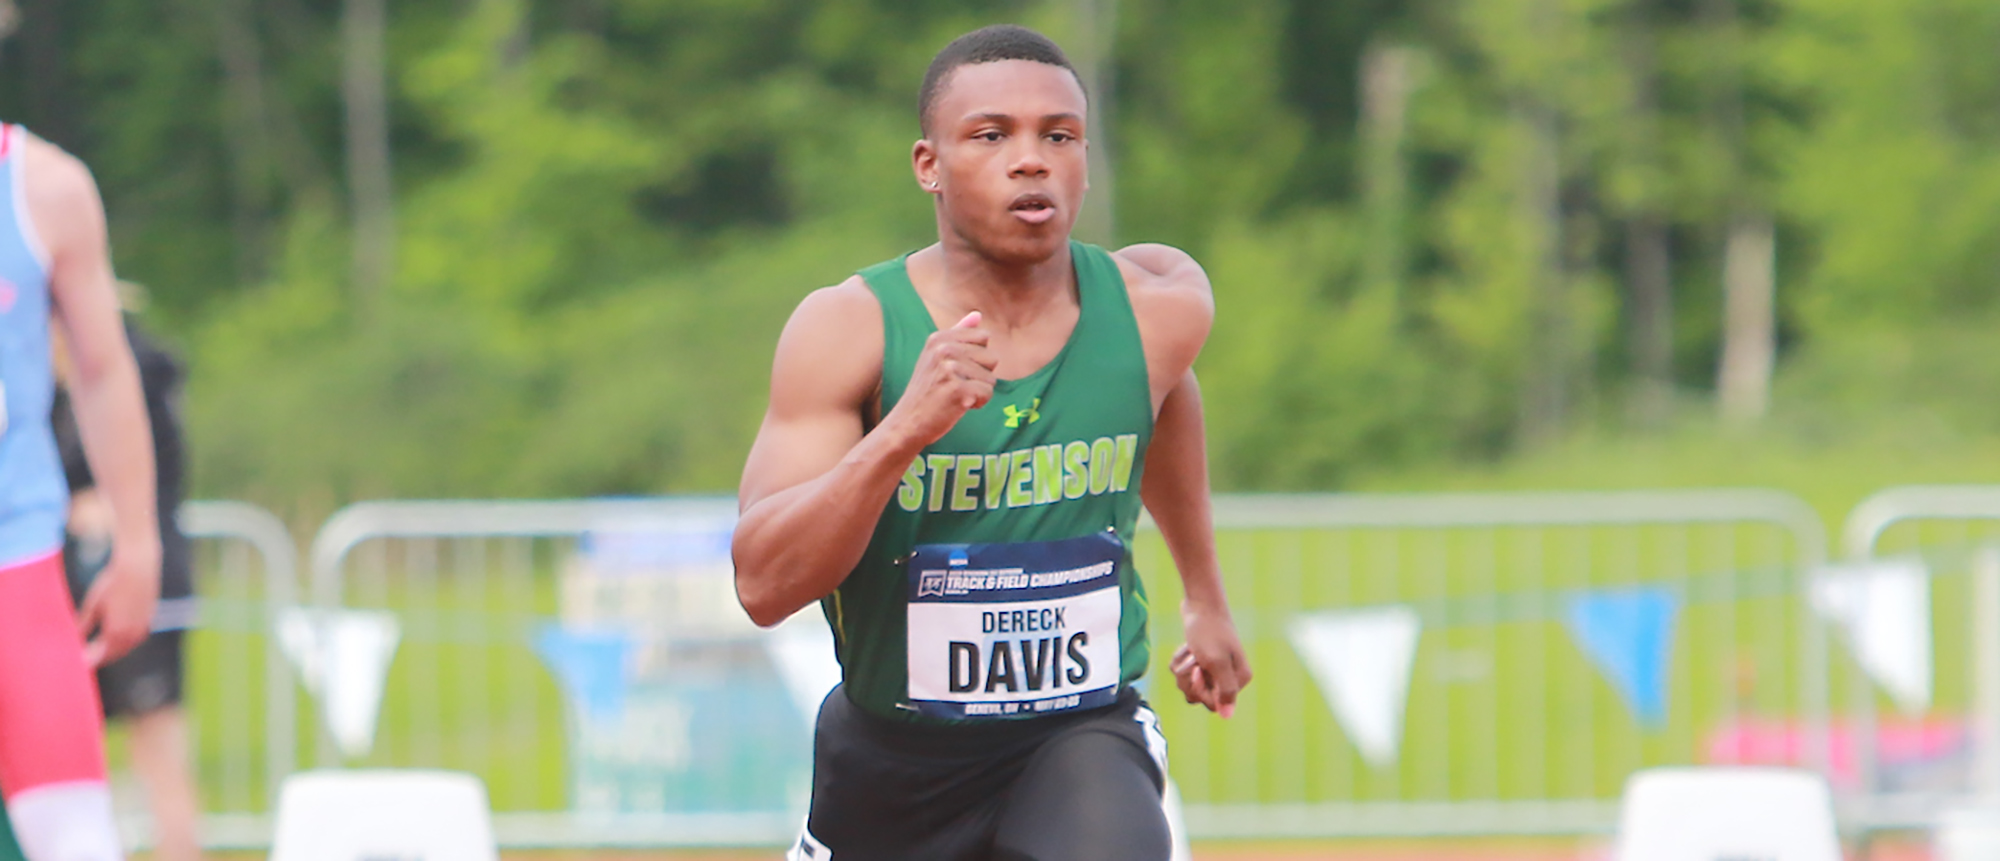 Dereck Davis Nearly Qualifies for NCAA 100 Meter Final, Finishes 10th